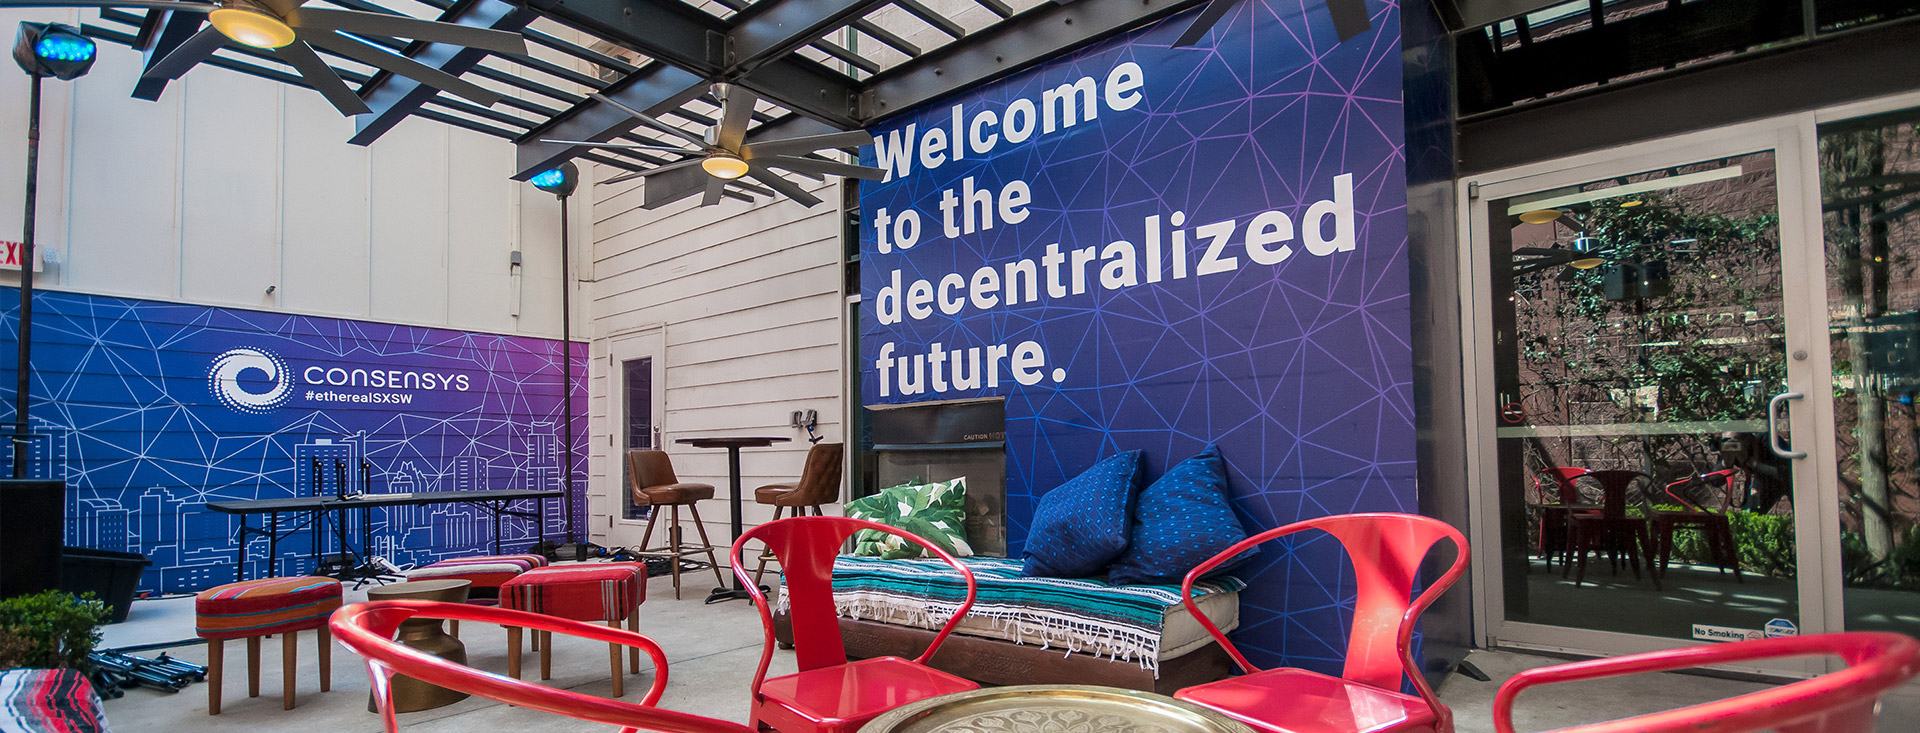 Consensys Activation SXSW